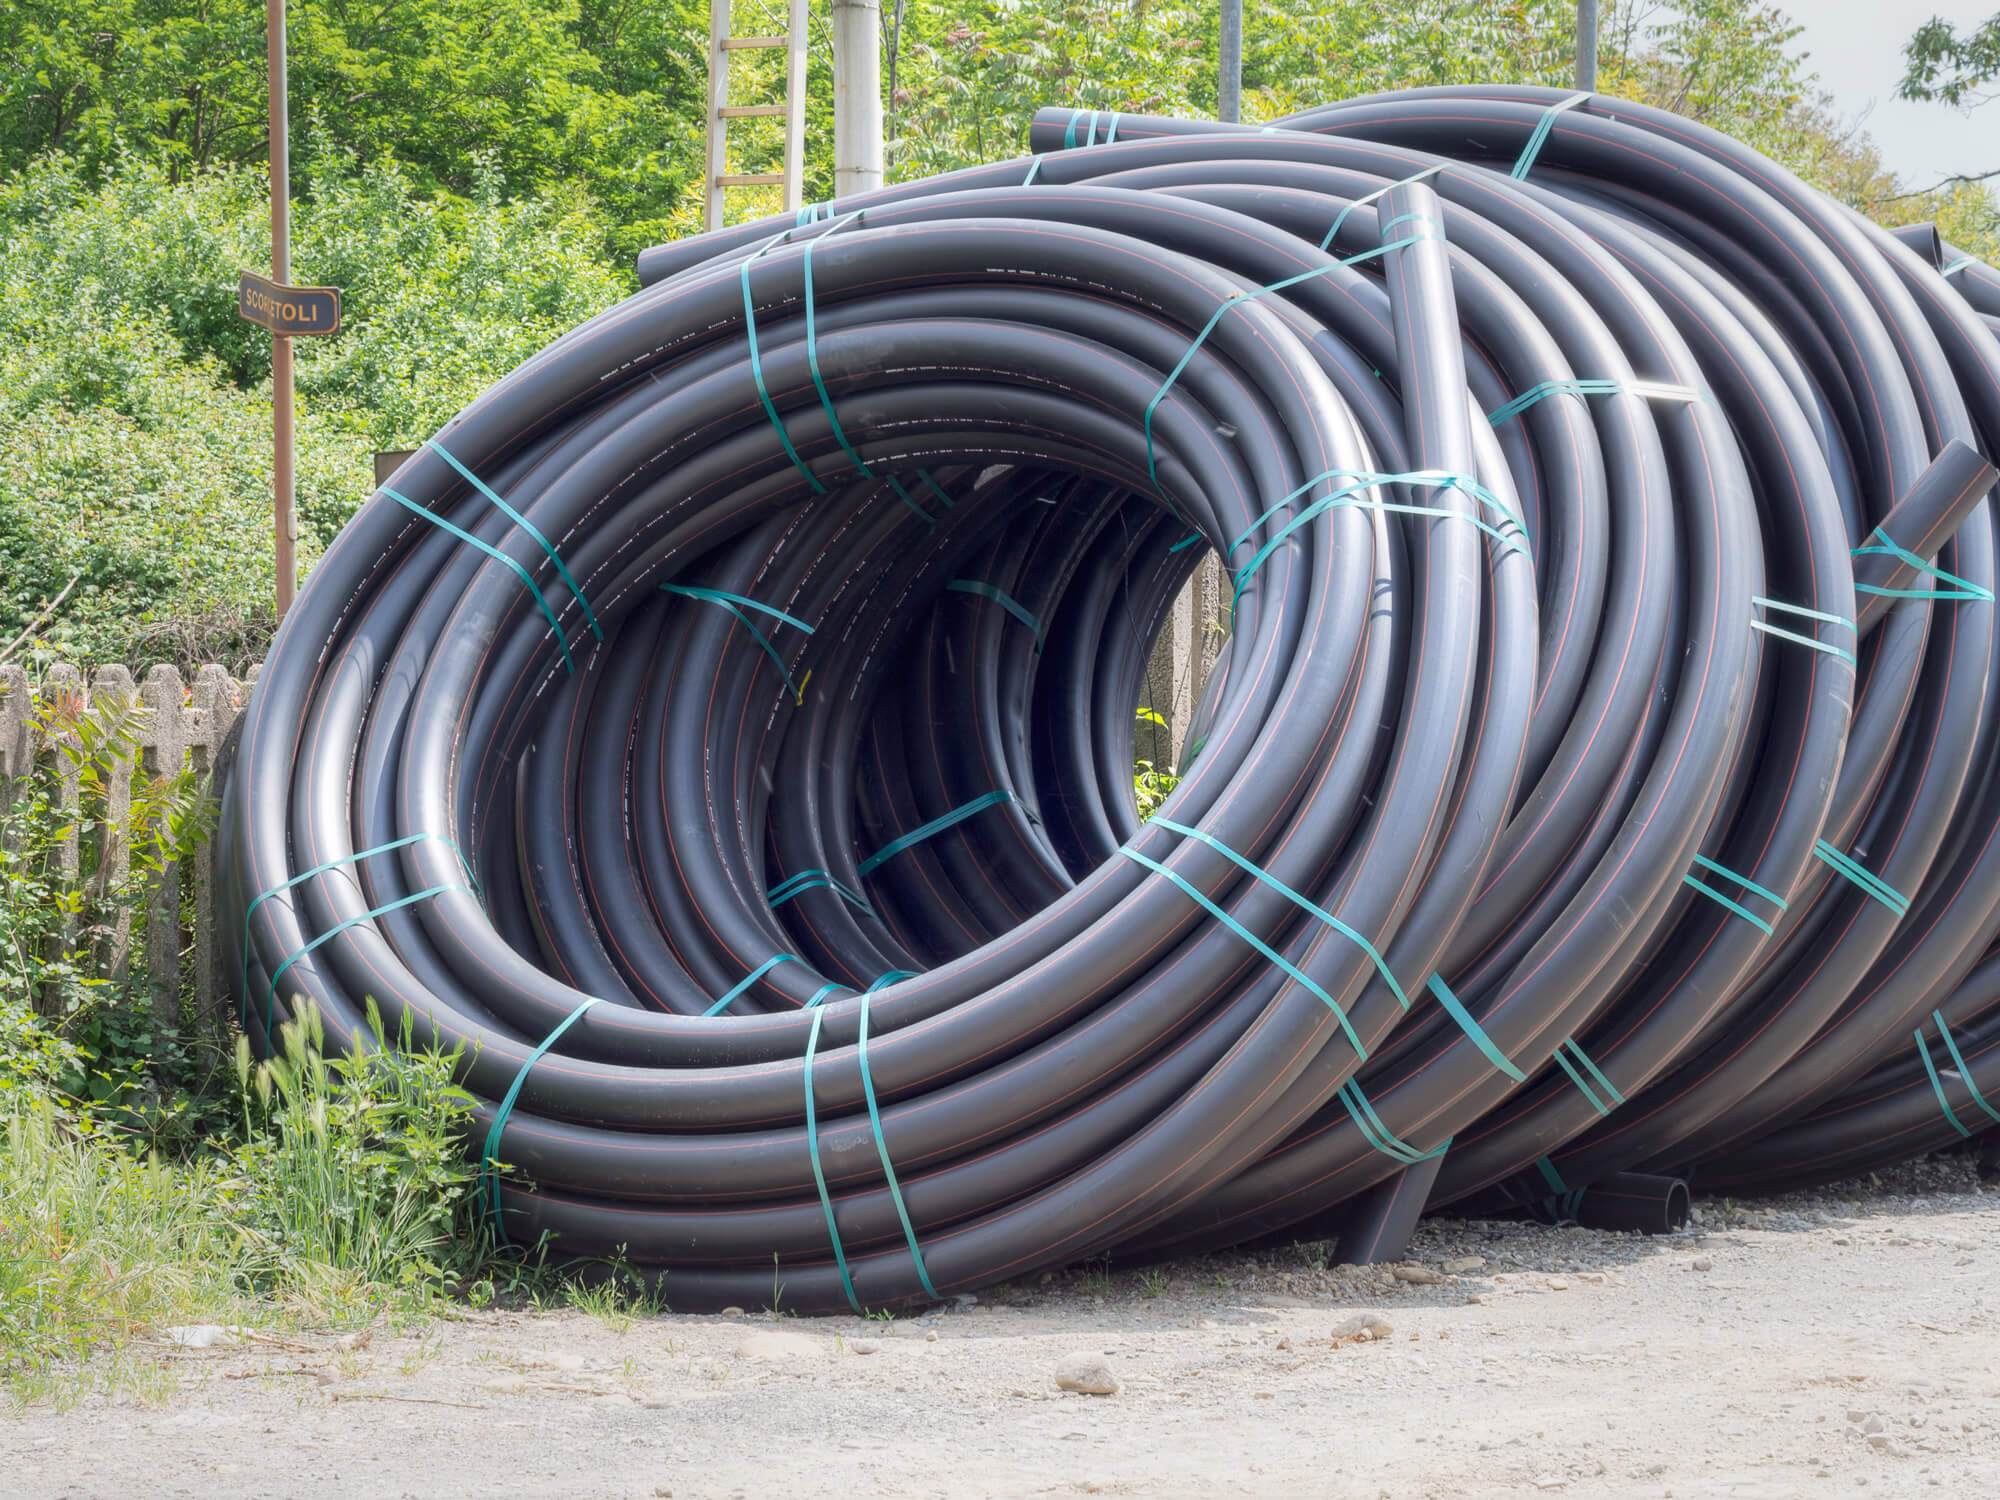 HDPE pipes are shipped and stored on spirals before recycling